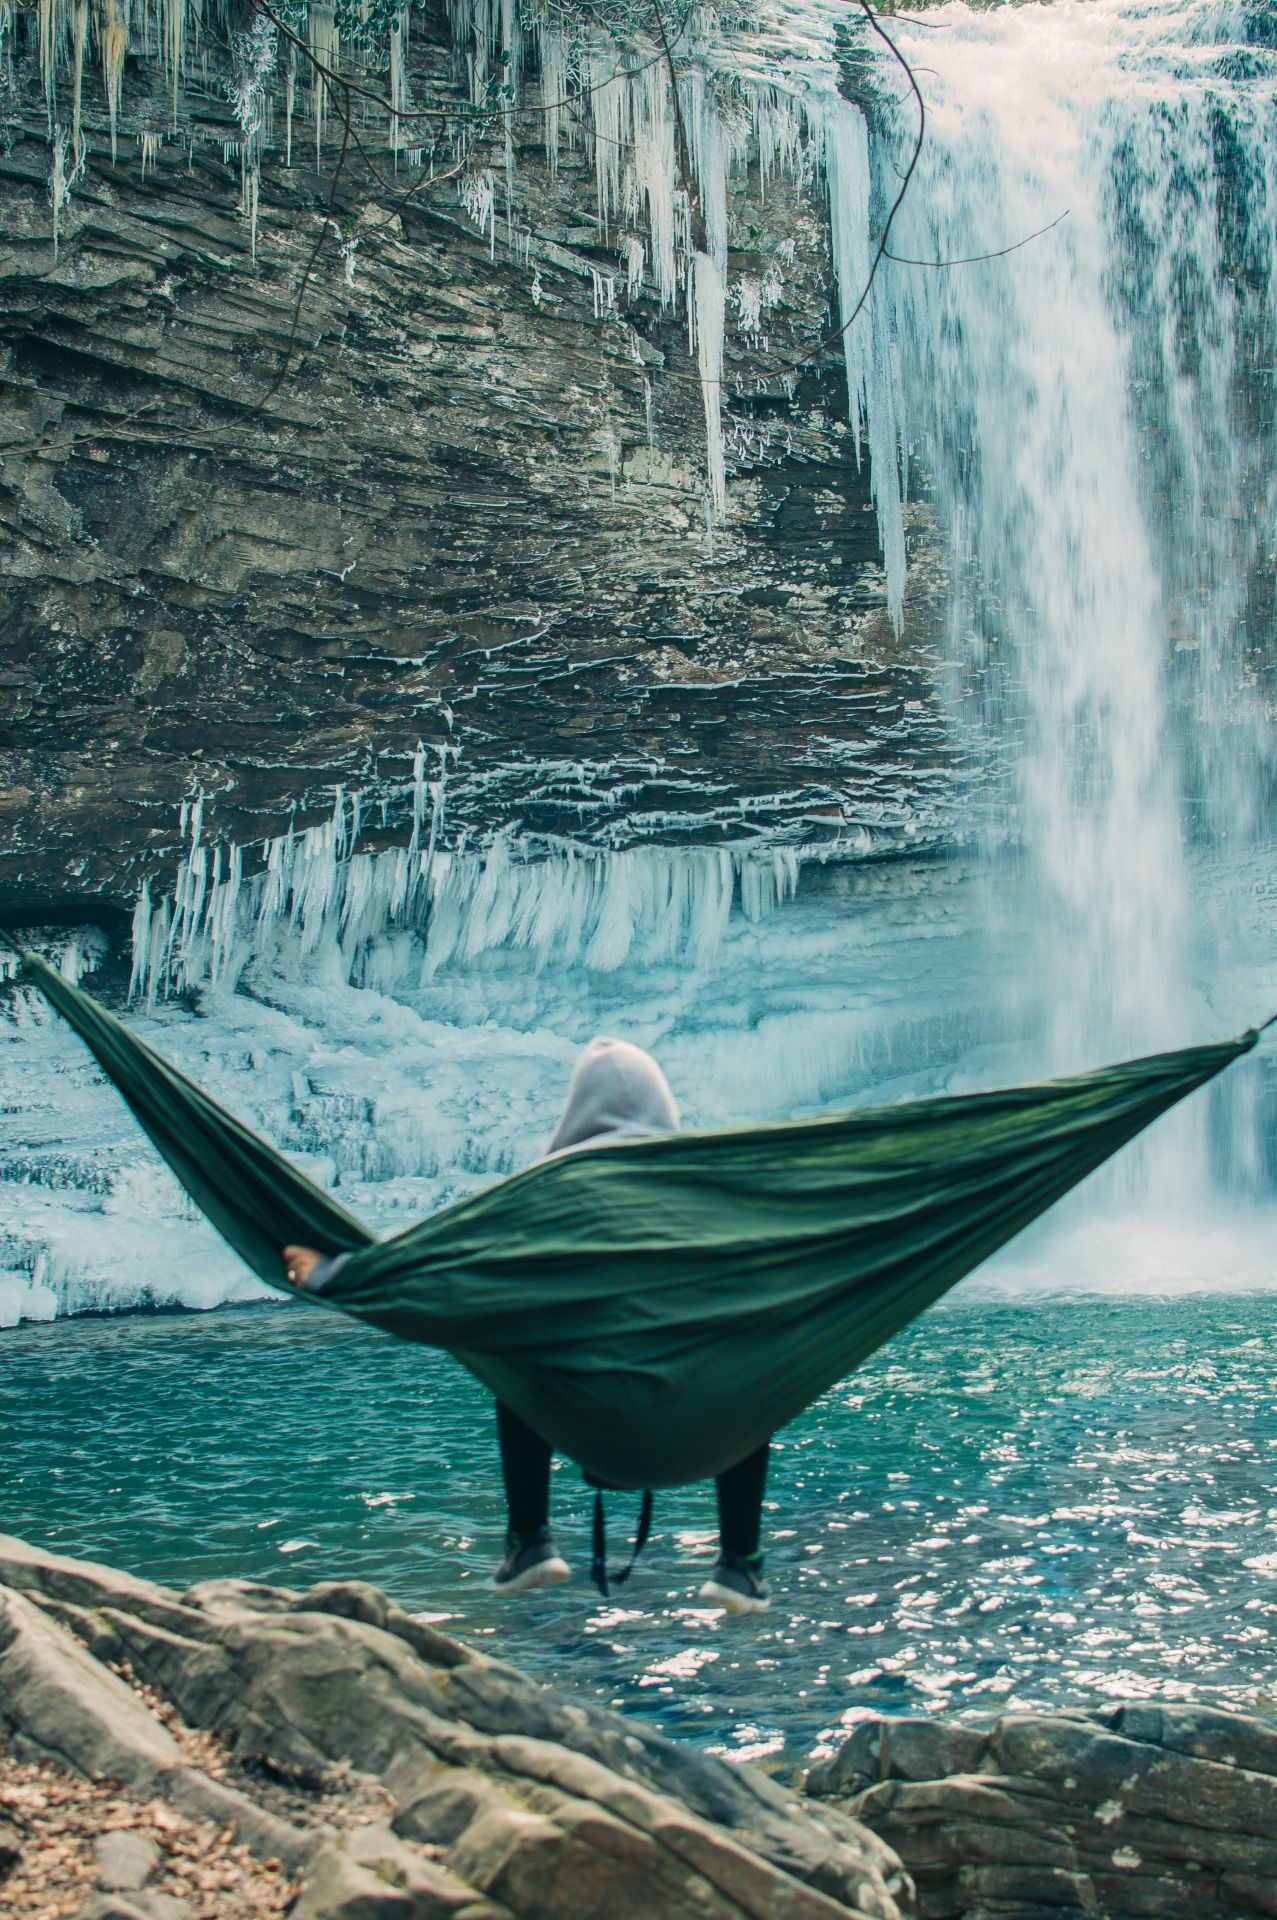 Pin by viviana báez p on pic pinterest wanderlust outdoors and